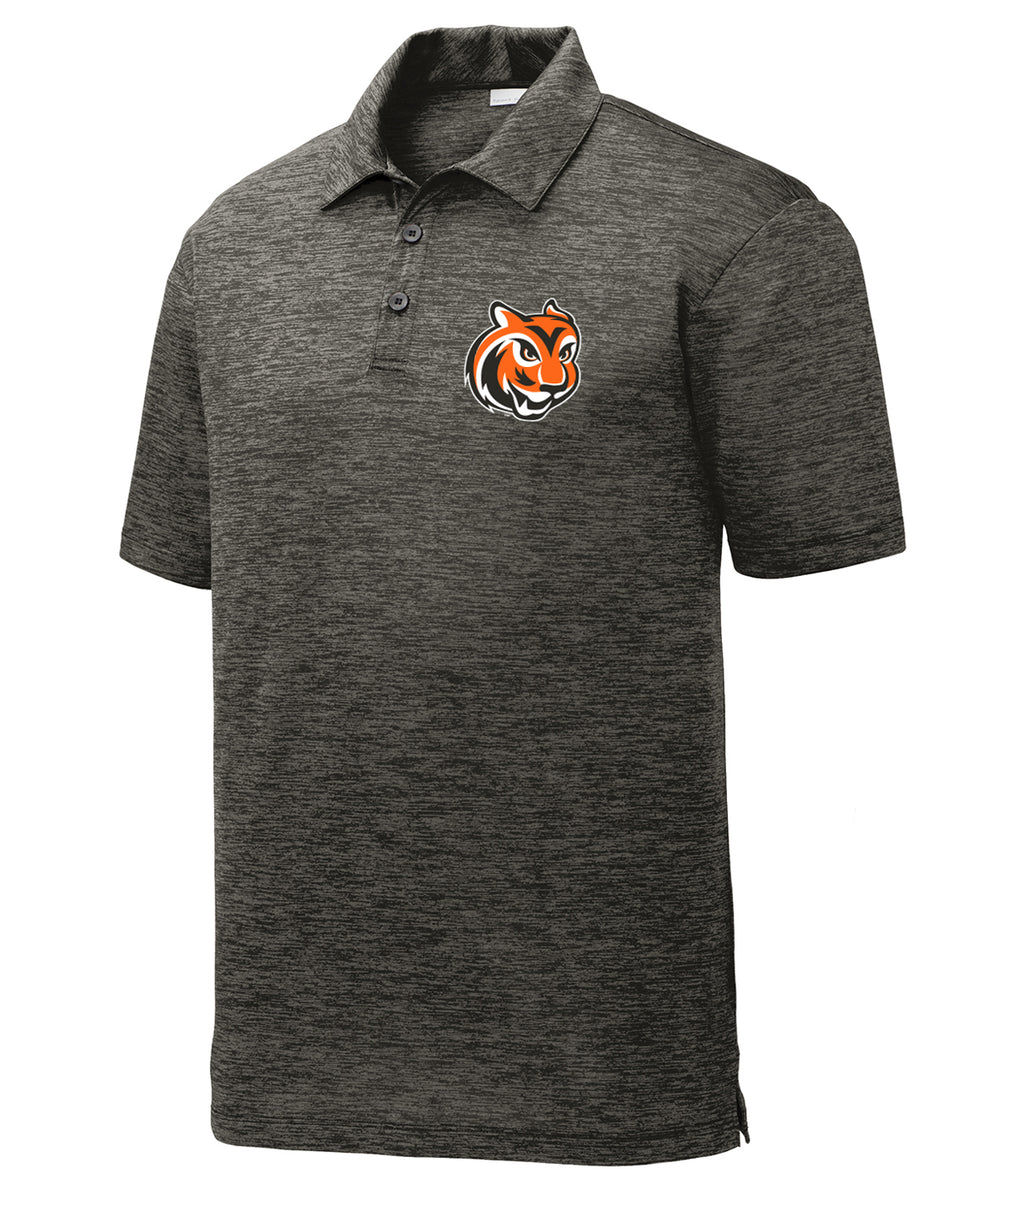 Tiger Head Performance Polo